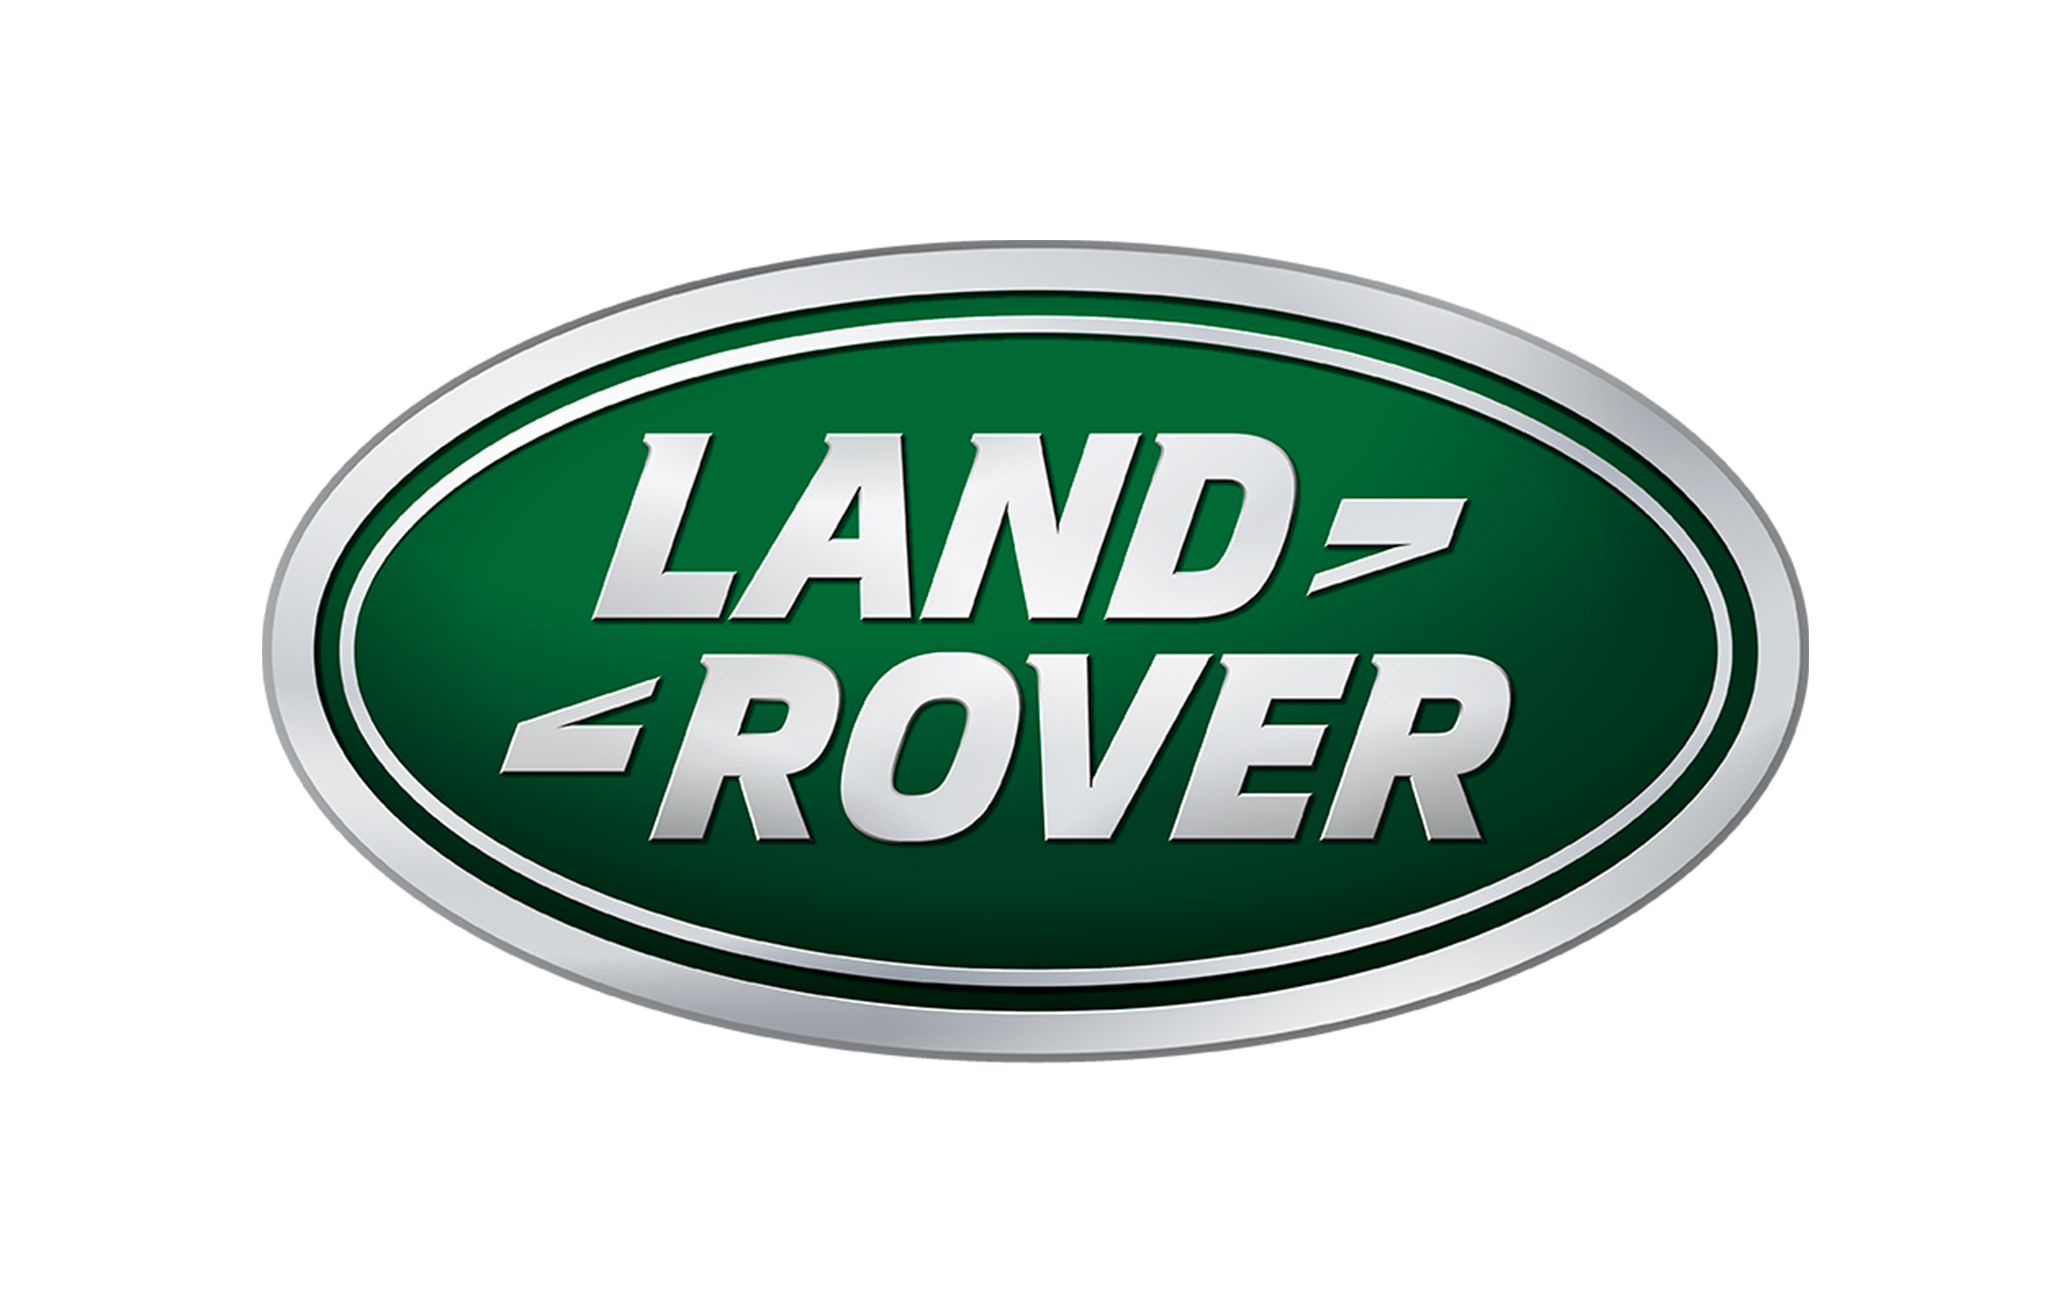 Website Logos_Land Rover_v02.png